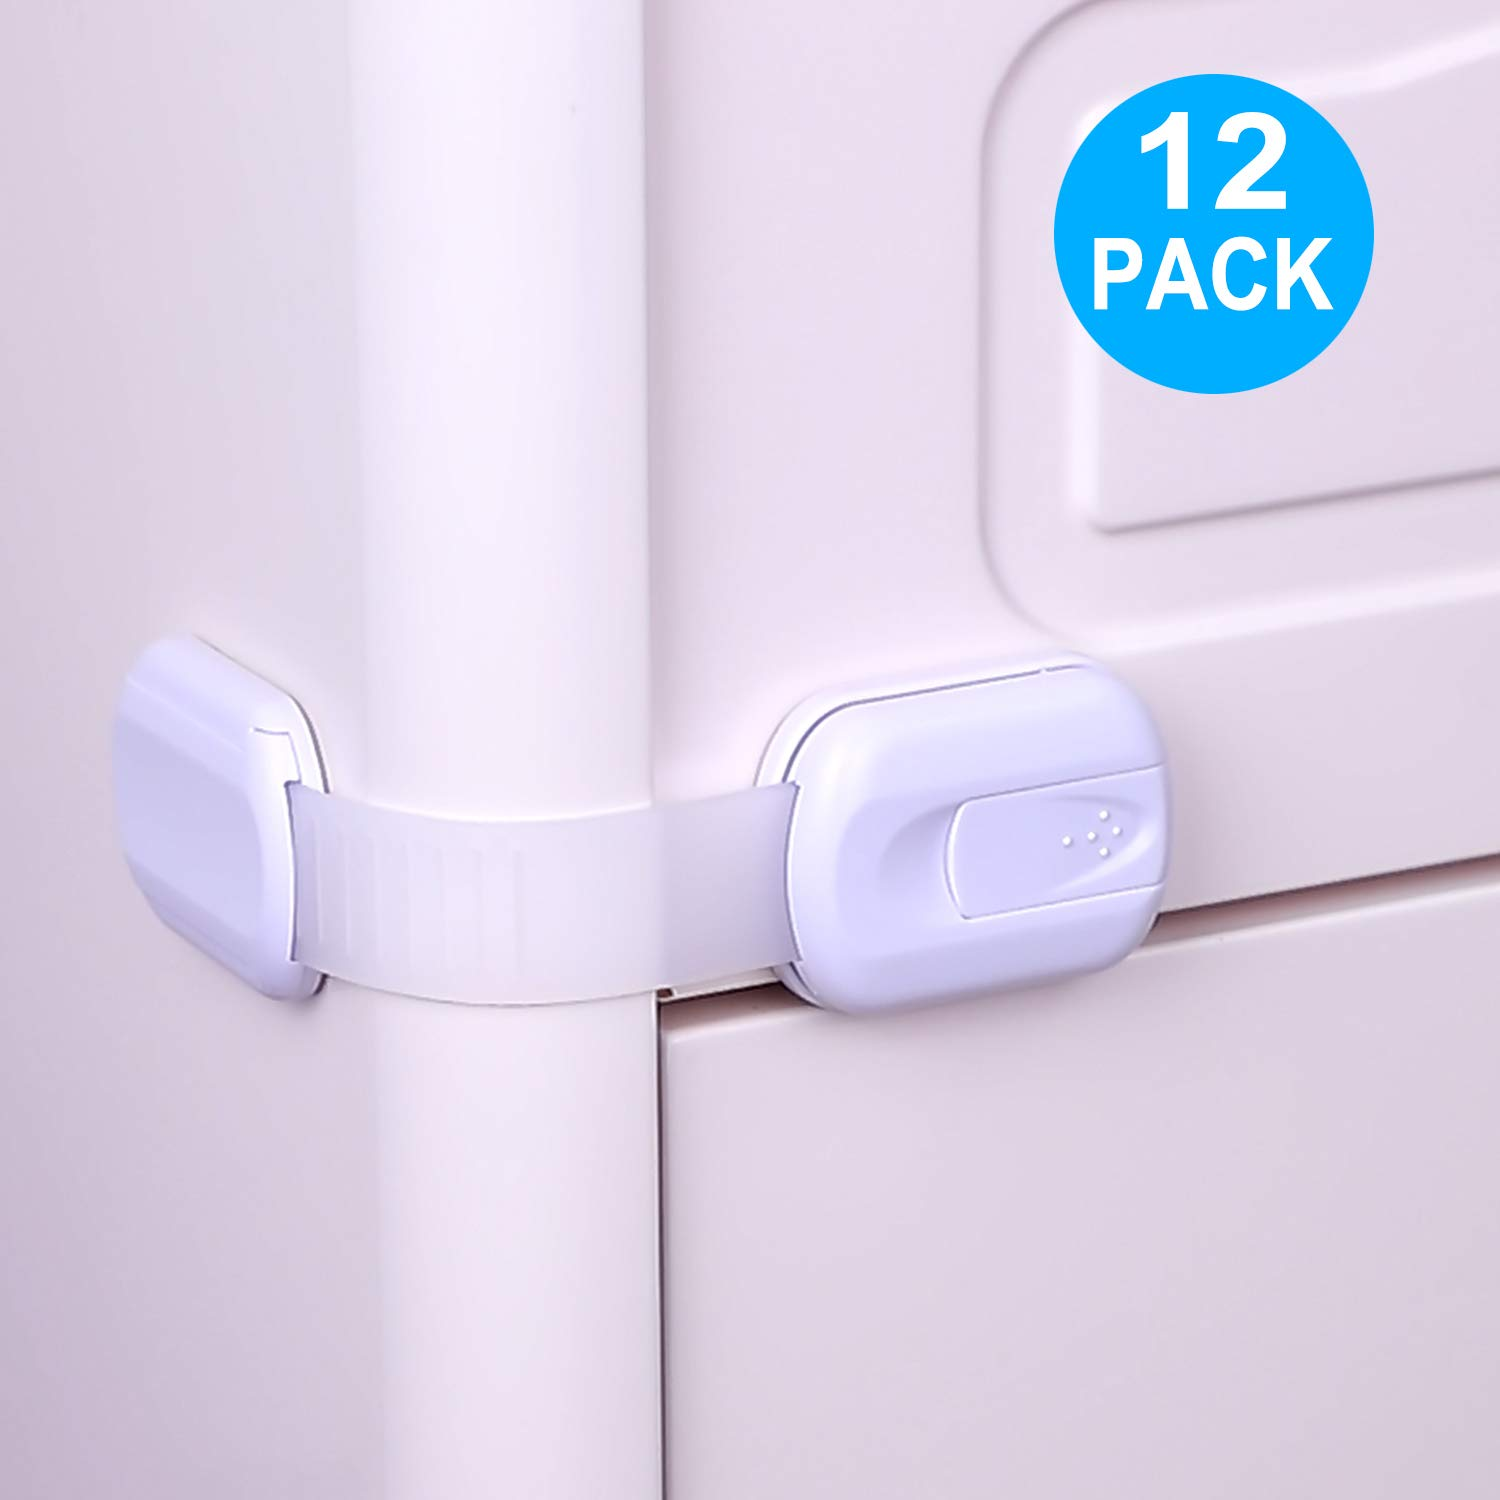 TUSUNNY Child Safety Cabinet Locks,No Tools or Drill Baby Proofing Strap Locks with Strong 3M Adhesive,Multi-Purpose Locks for Drawers, Cabinets, Oven, Toilet, Fridge, Door, Window, Cupboard